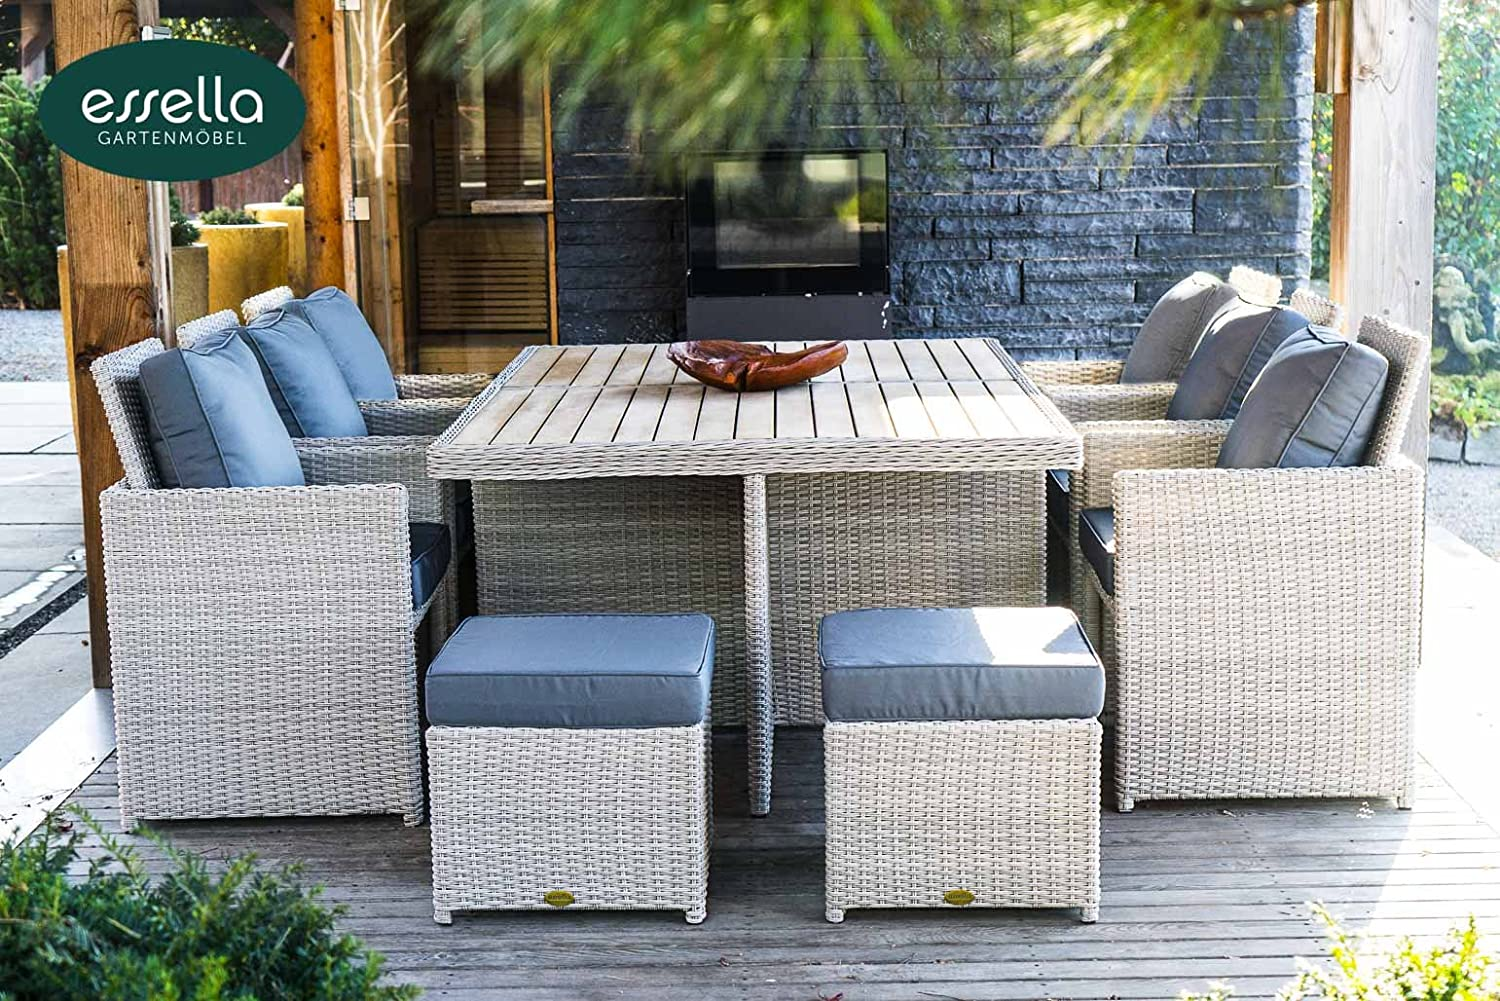 polyrattan sitzgruppe vienna 6 personen polywood rundgeflecht vintage weiss gartenm bel. Black Bedroom Furniture Sets. Home Design Ideas